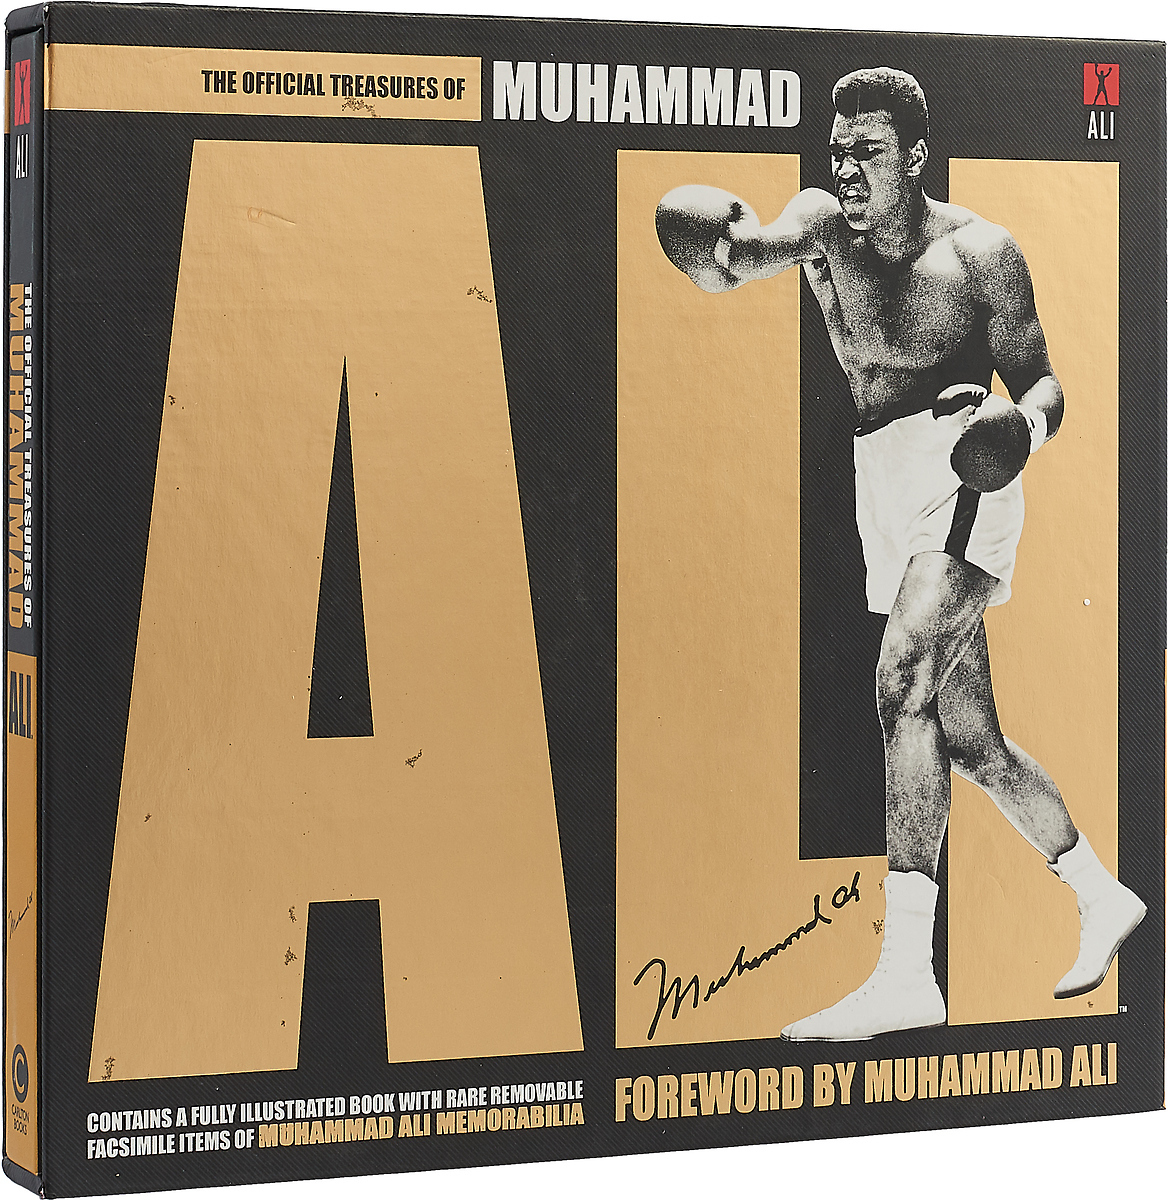 The Official Treasures of Muhammad Ali